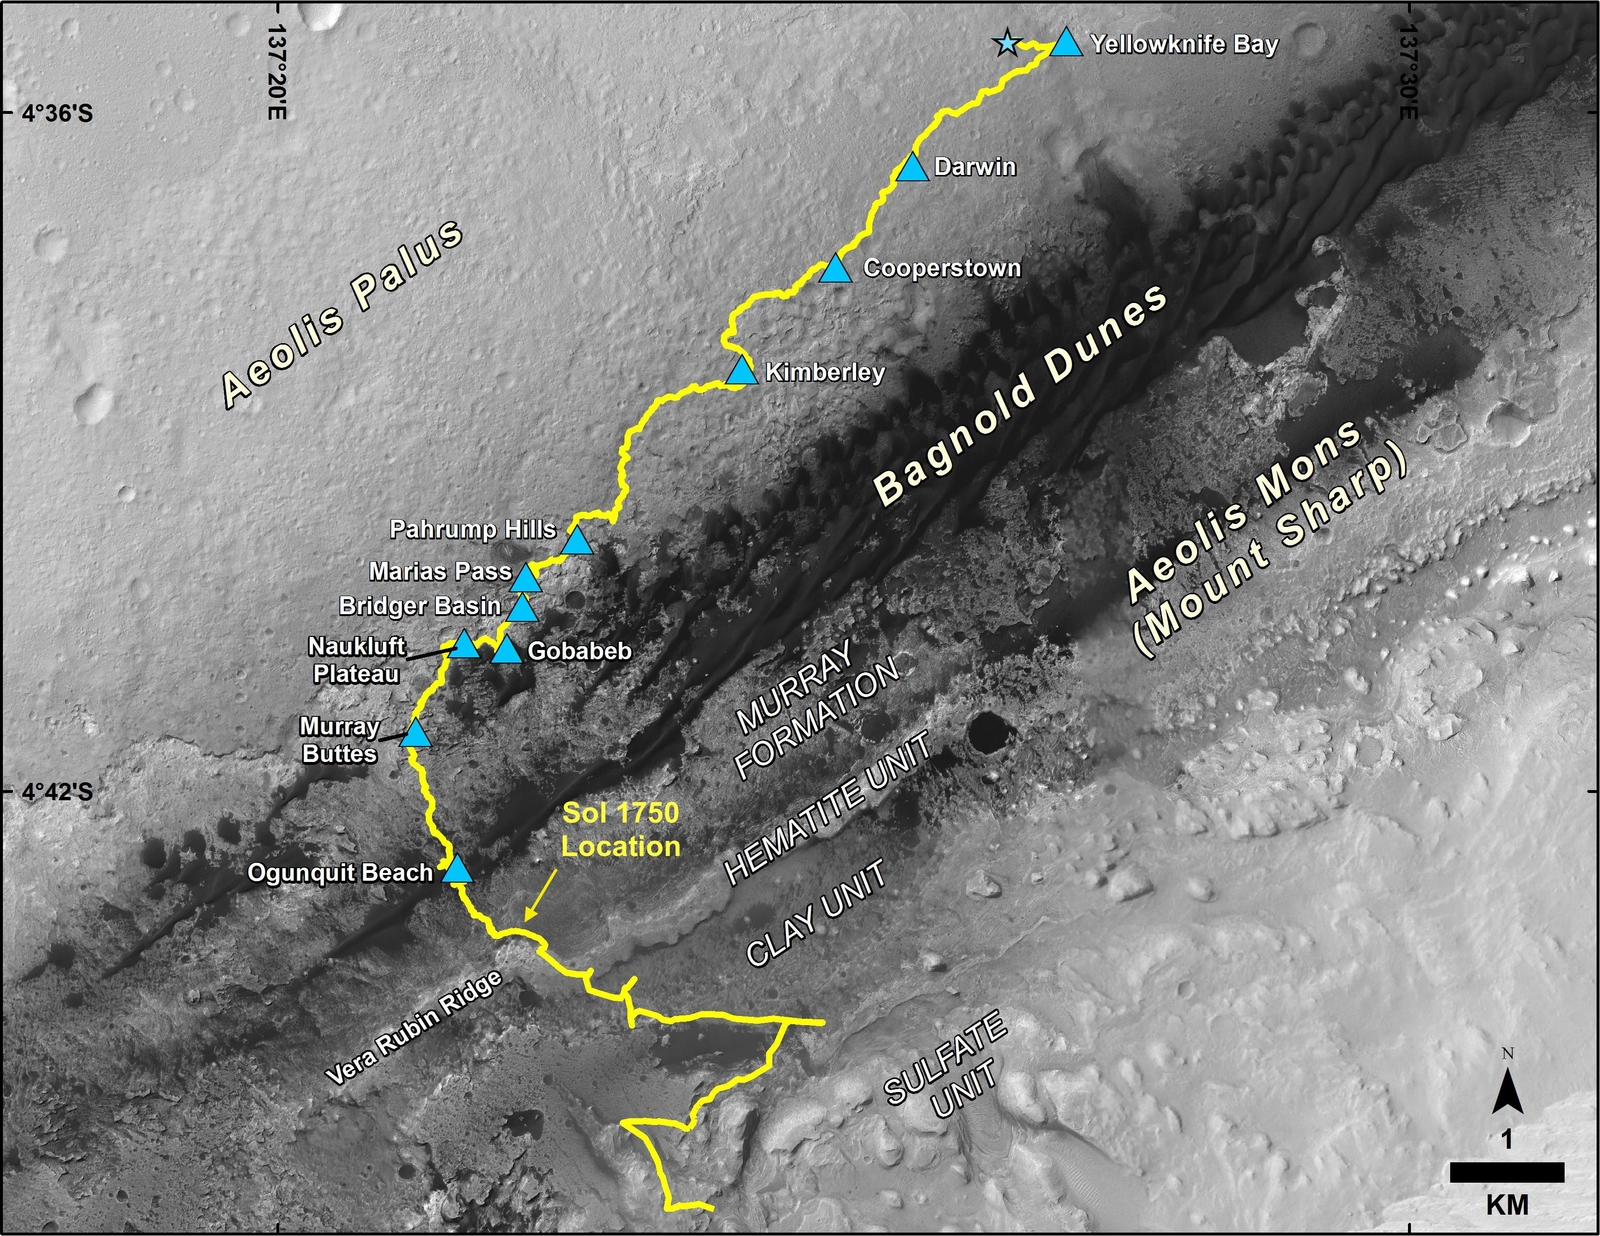 This map shows the route driven by NASA's Curiosity Mars rover, from the location where it landed in August 2012 to its location in July 2017 (Sol 1750), and its planned path to additional geological layers of lower Mount Sharp.